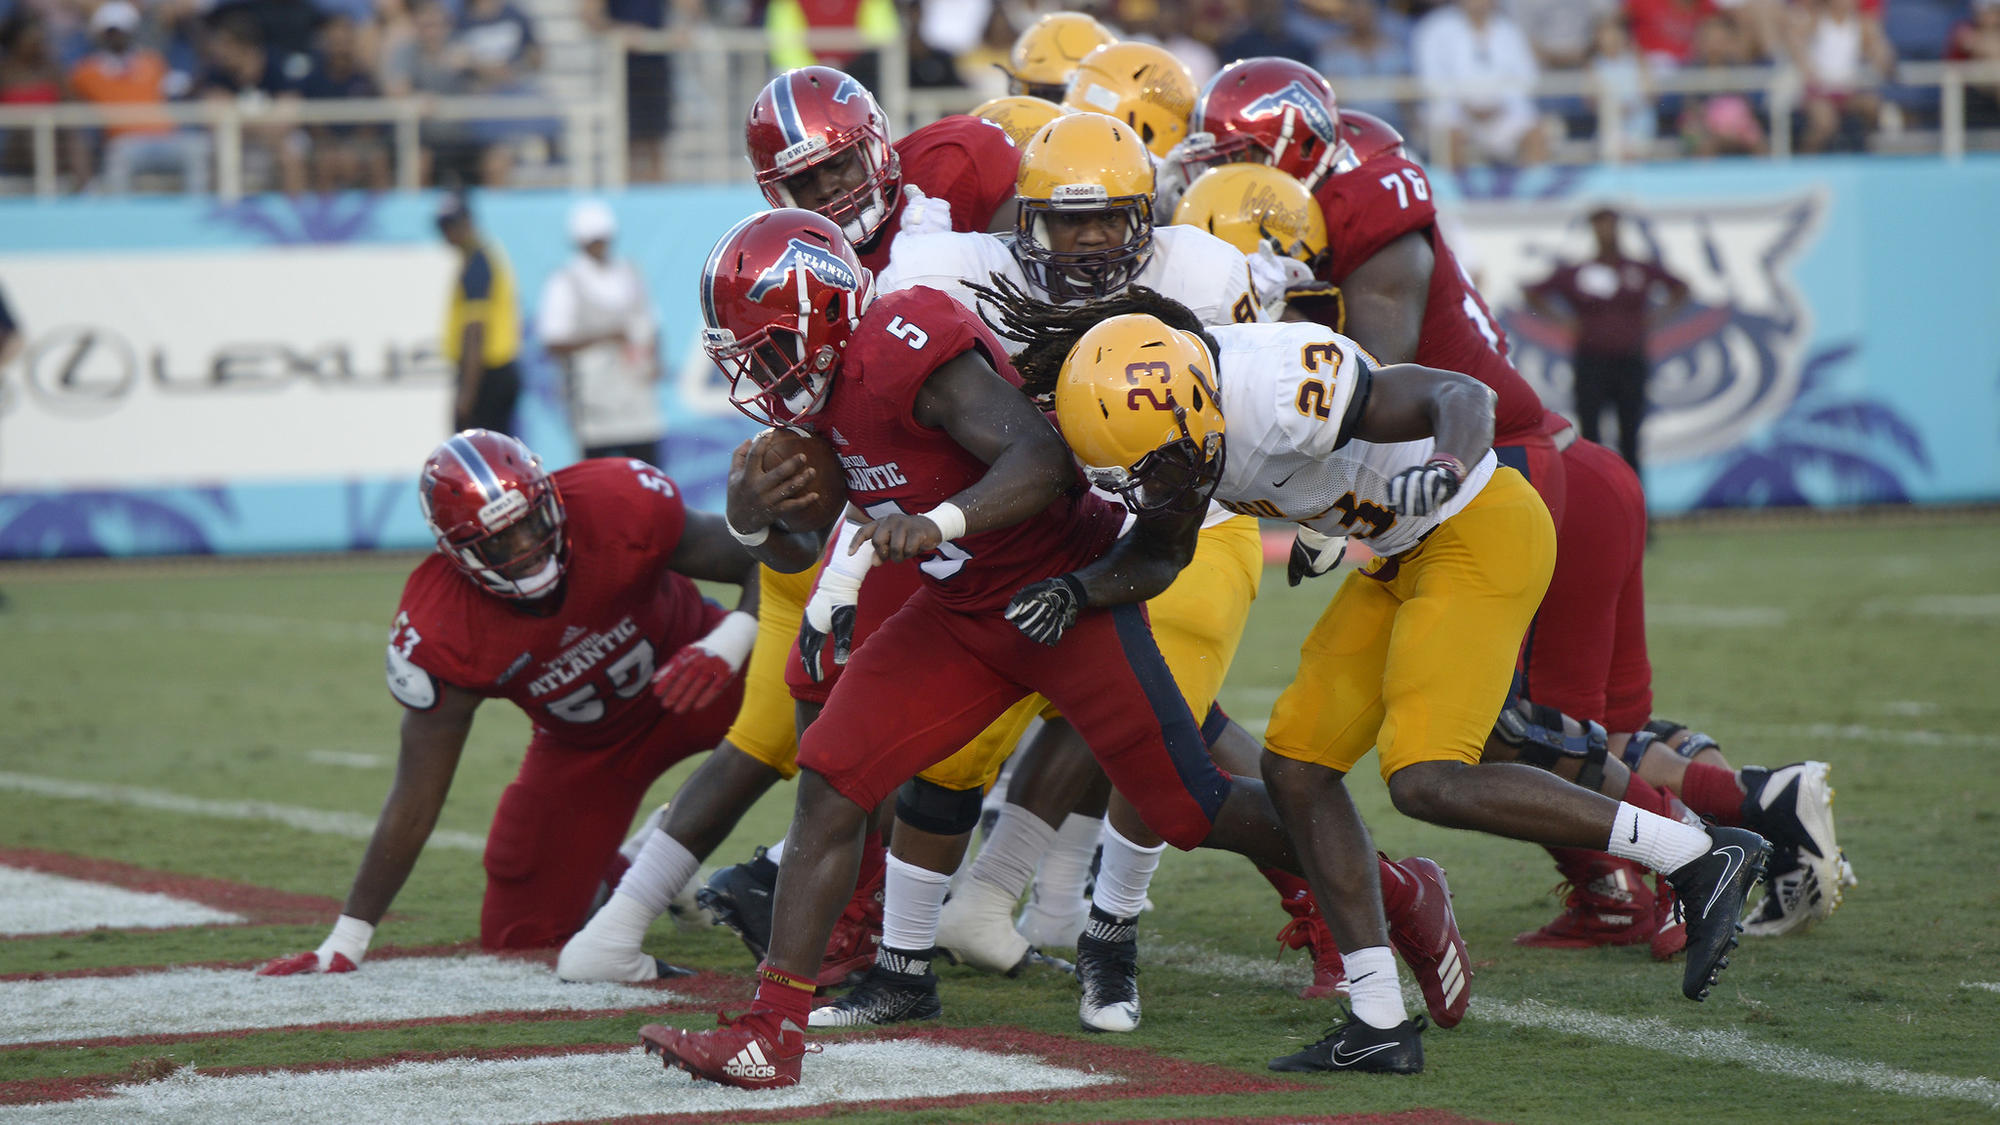 05046d734 Singletary rushes for FAU touchdown record in win over Bethune-Cookman -  Sun Sentinel